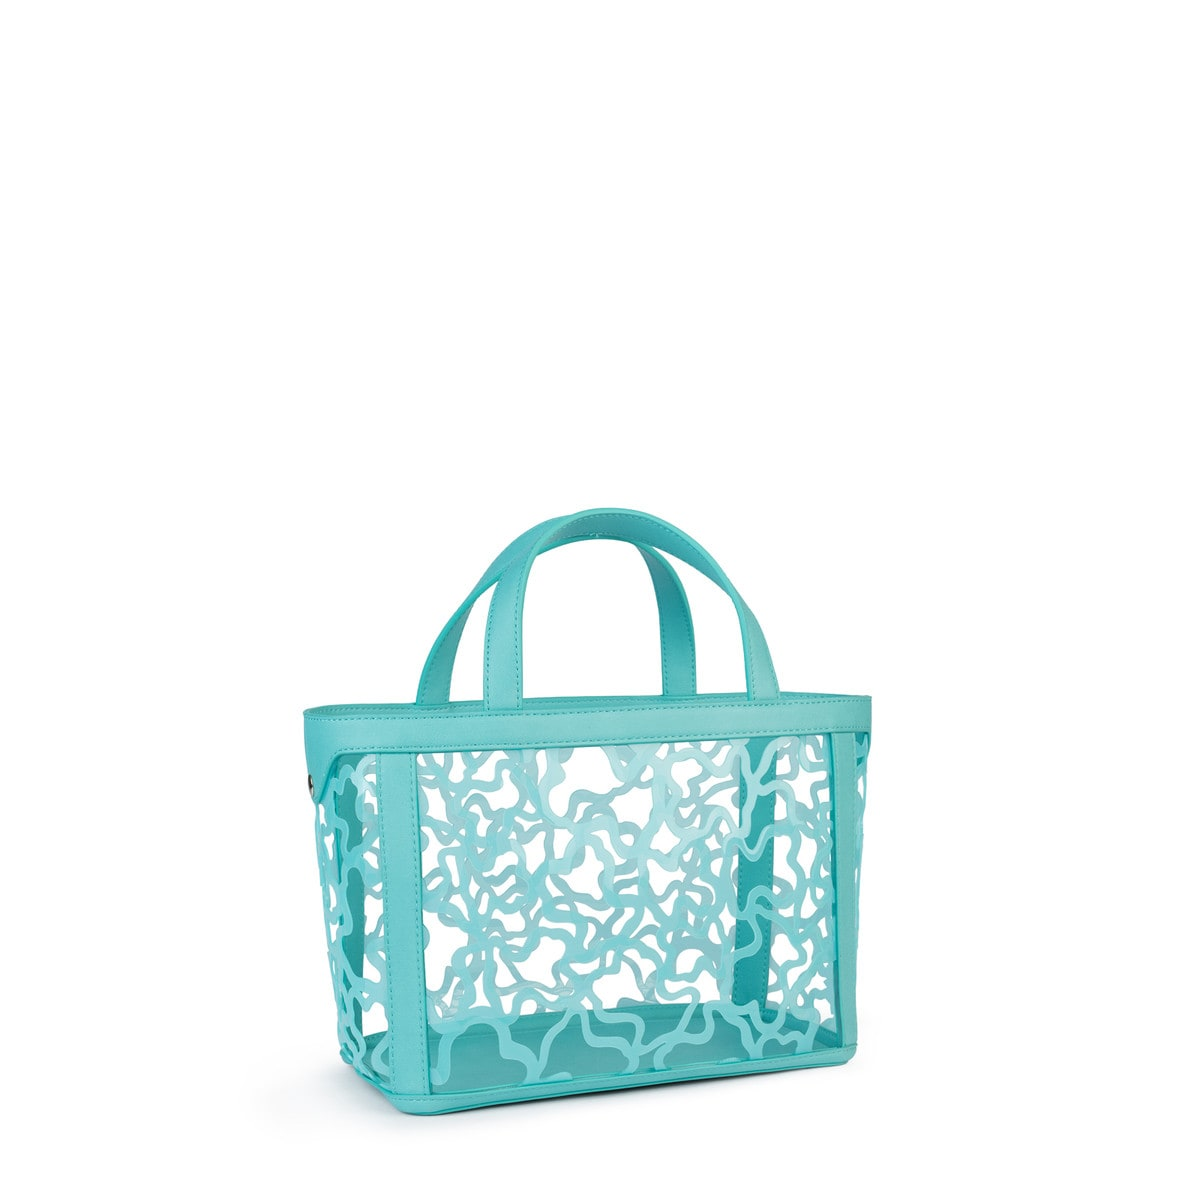 Small mint Vinyl Kaos Shock Tote bag